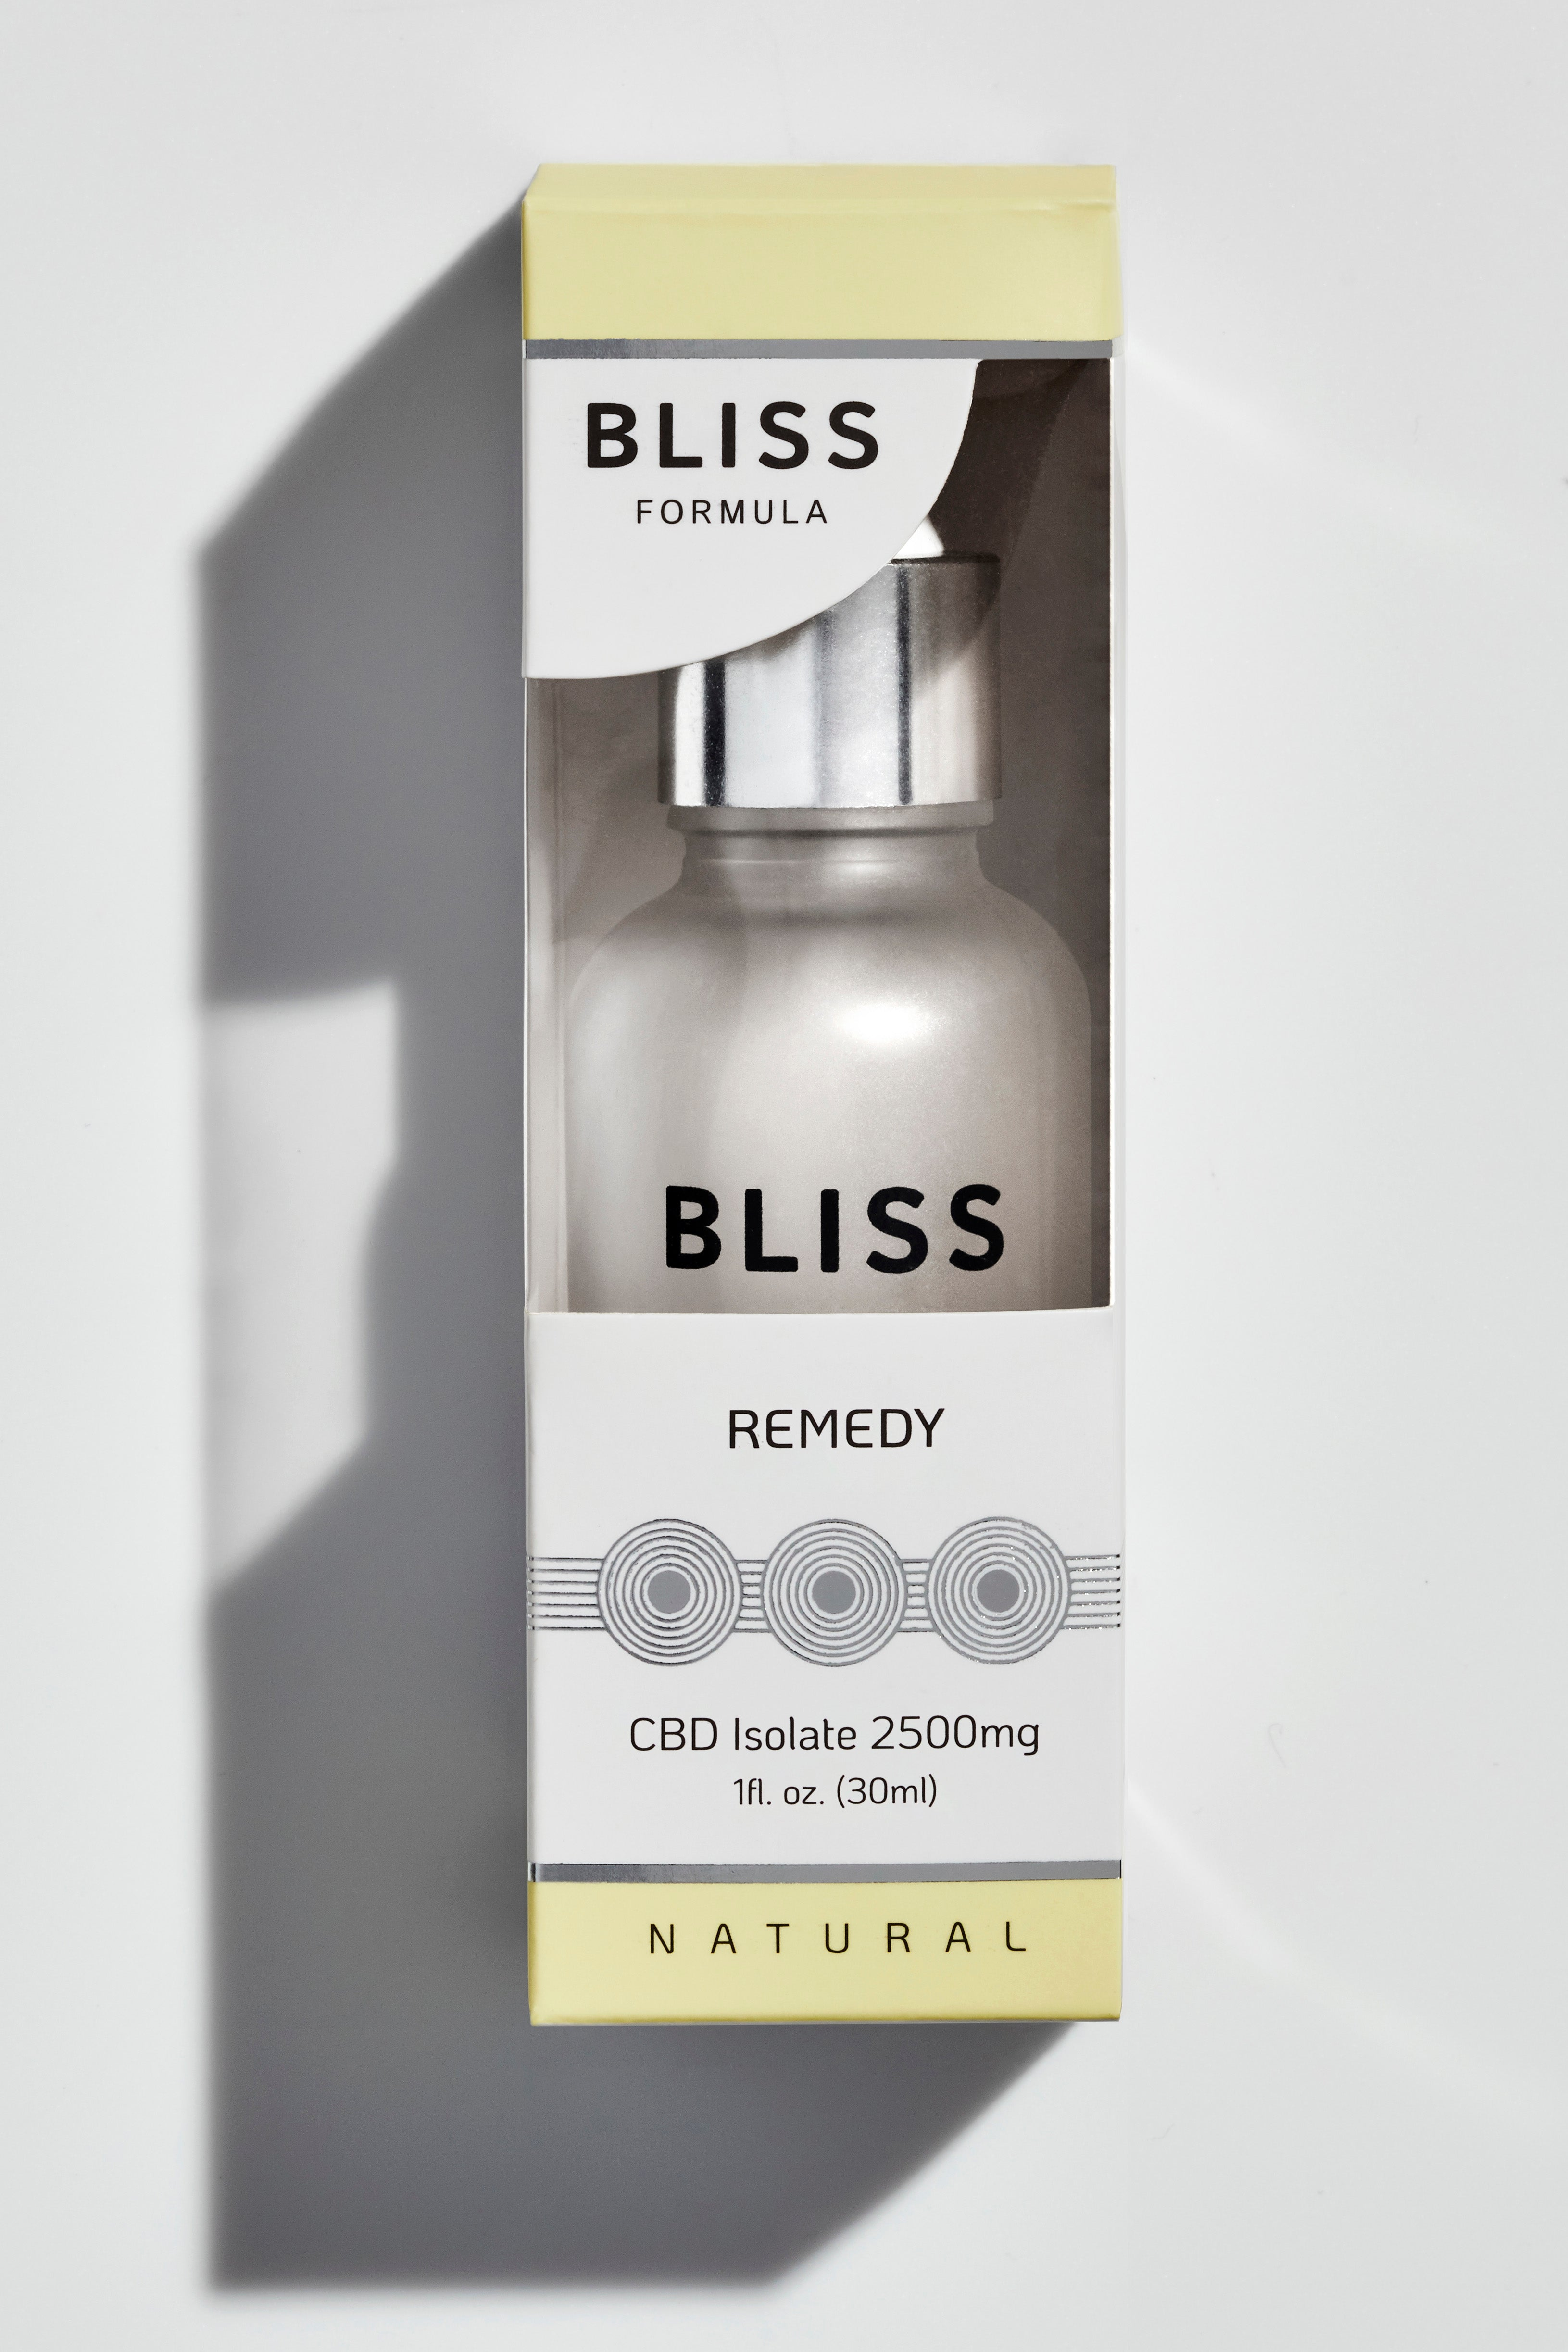 BLISS FORMULA -  REMEDY 30ml Tincture (2500mg CBD oil)